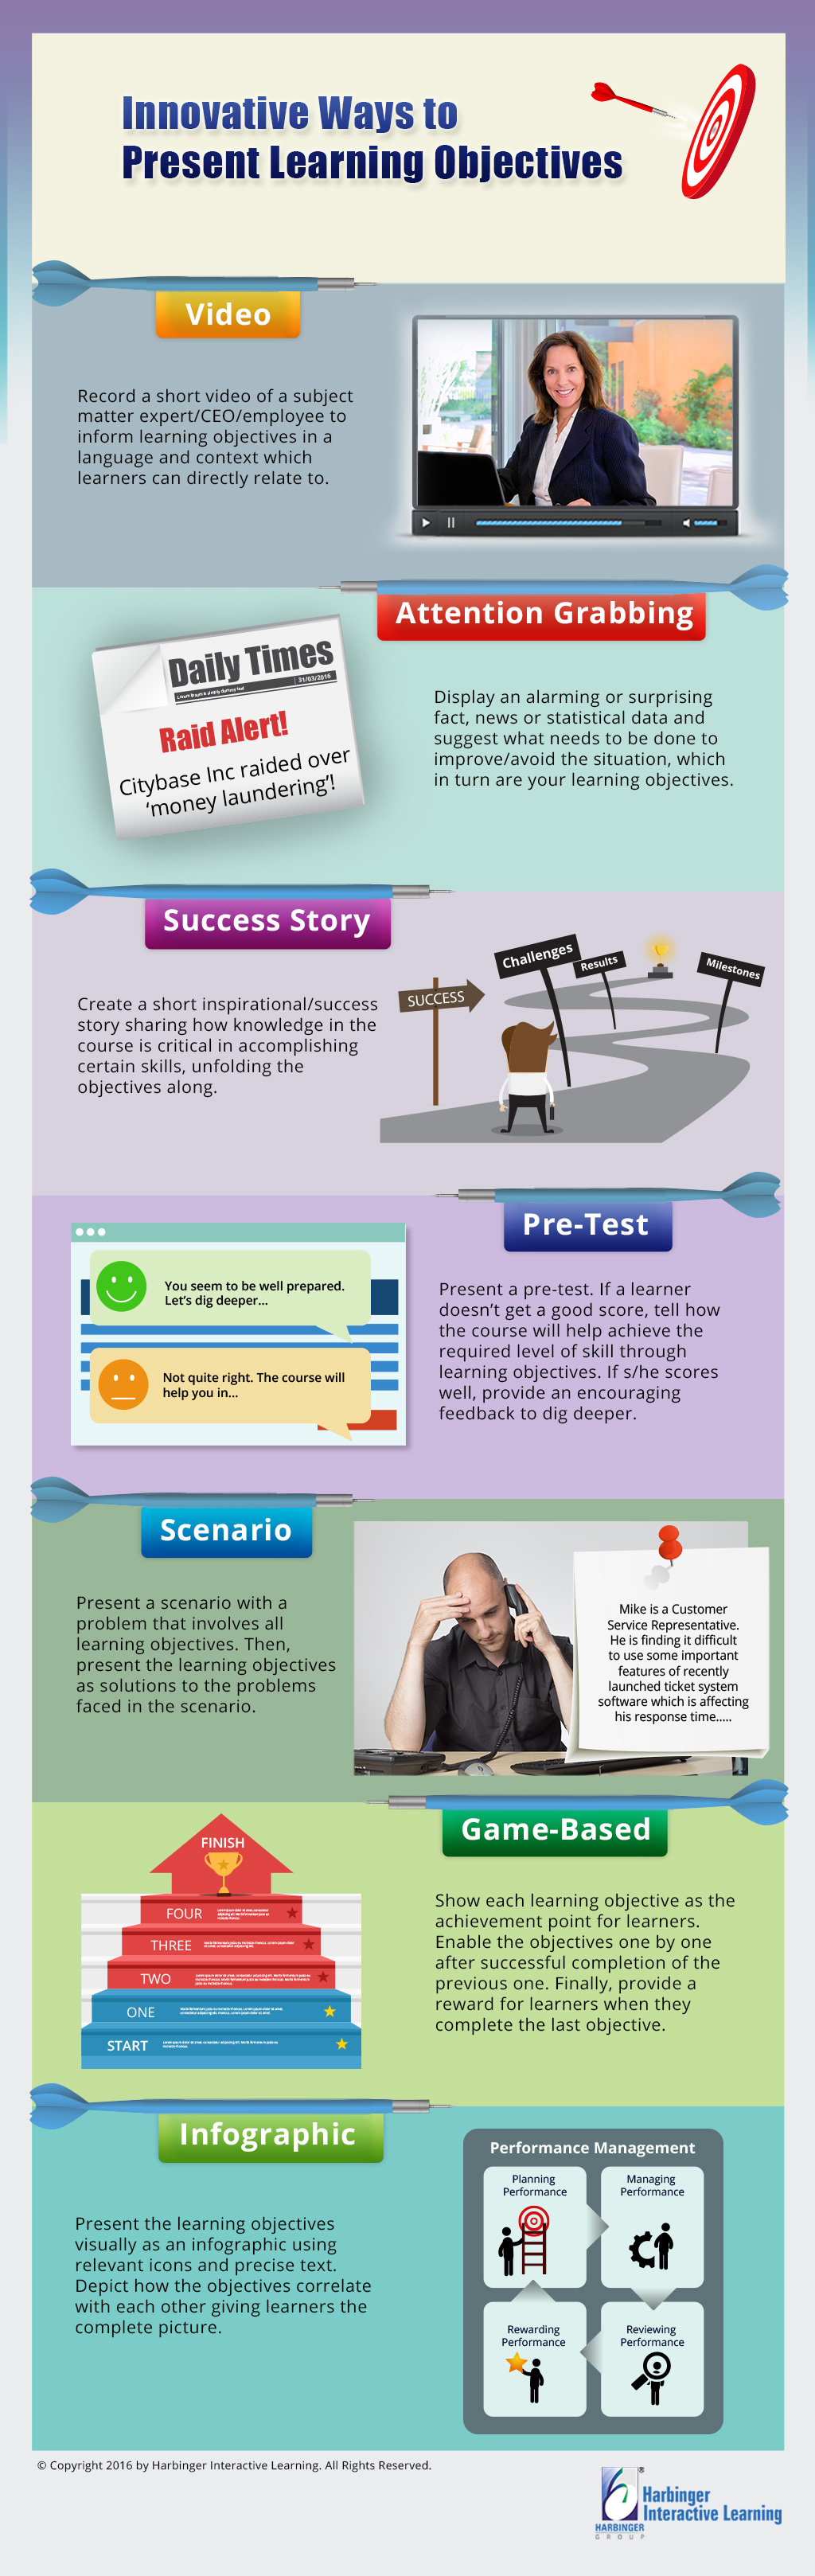 An infographic presenting innovative ways to present learning objectives